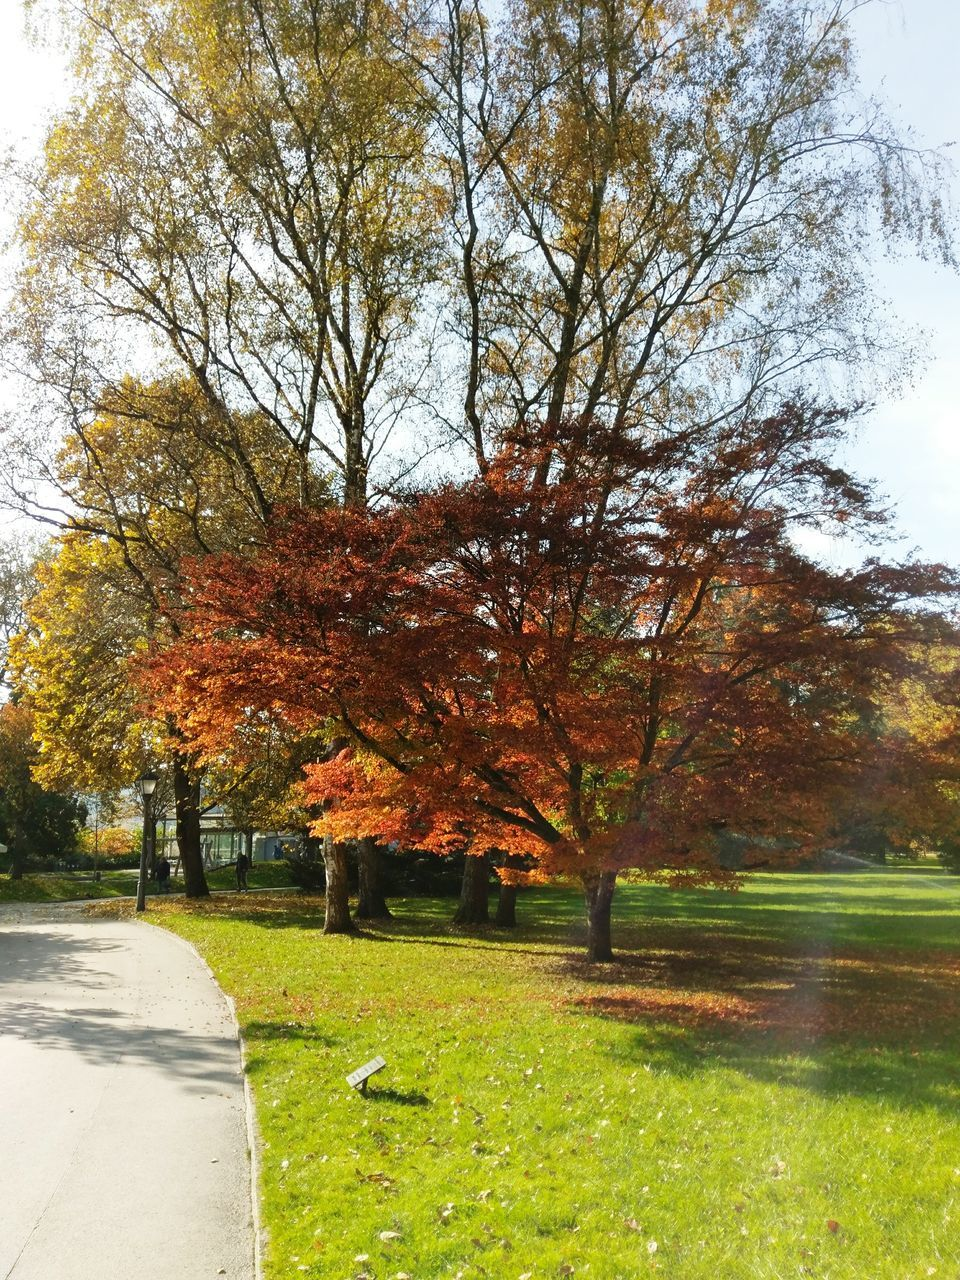 tree, autumn, nature, change, tranquility, beauty in nature, tranquil scene, grass, outdoors, day, scenics, leaf, growth, no people, the way forward, green color, park - man made space, branch, sky